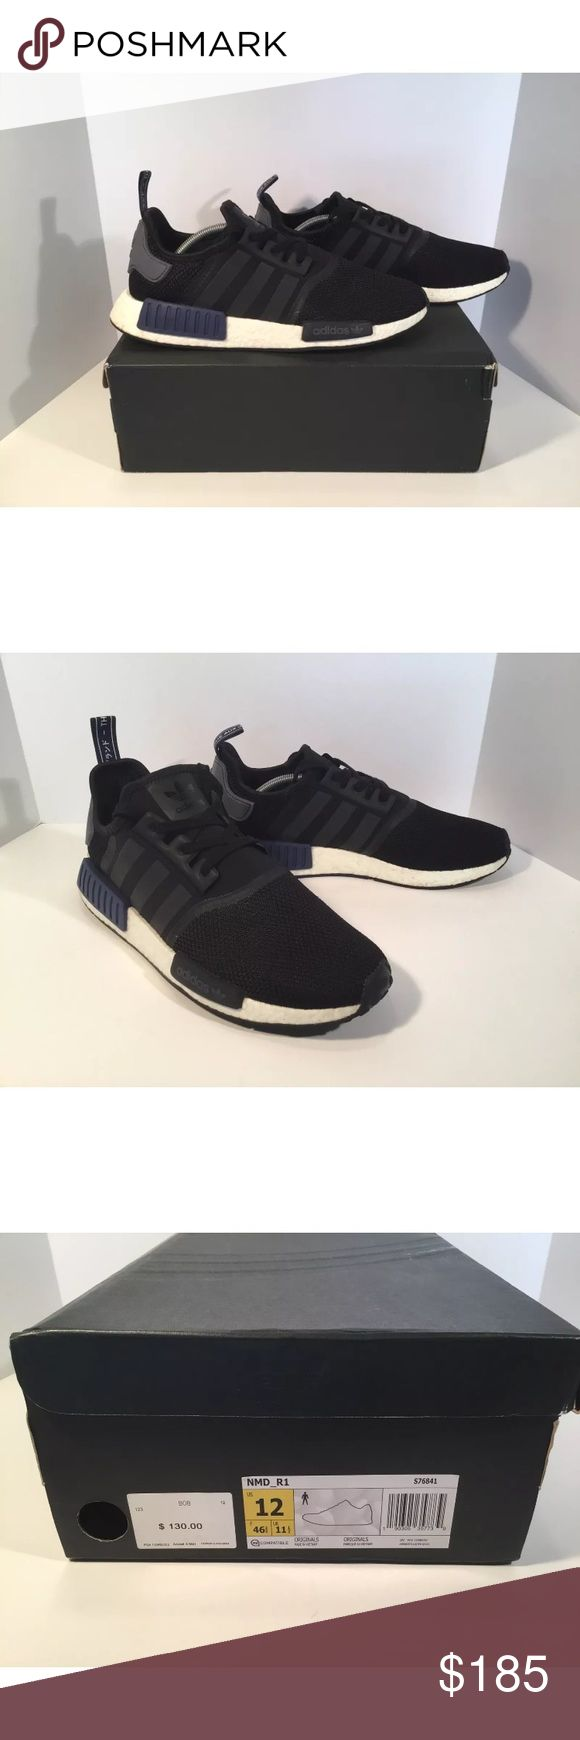 Adidas NMD R1 Sports Heritage Black Item details:   -adidas brand  -in great condition  -comes with box  -Men's Size 12  -Blue, Black And White  -I ship next day  -nmd R1   Please let me know if you have any questions. adidas Shoes Athletic Shoes